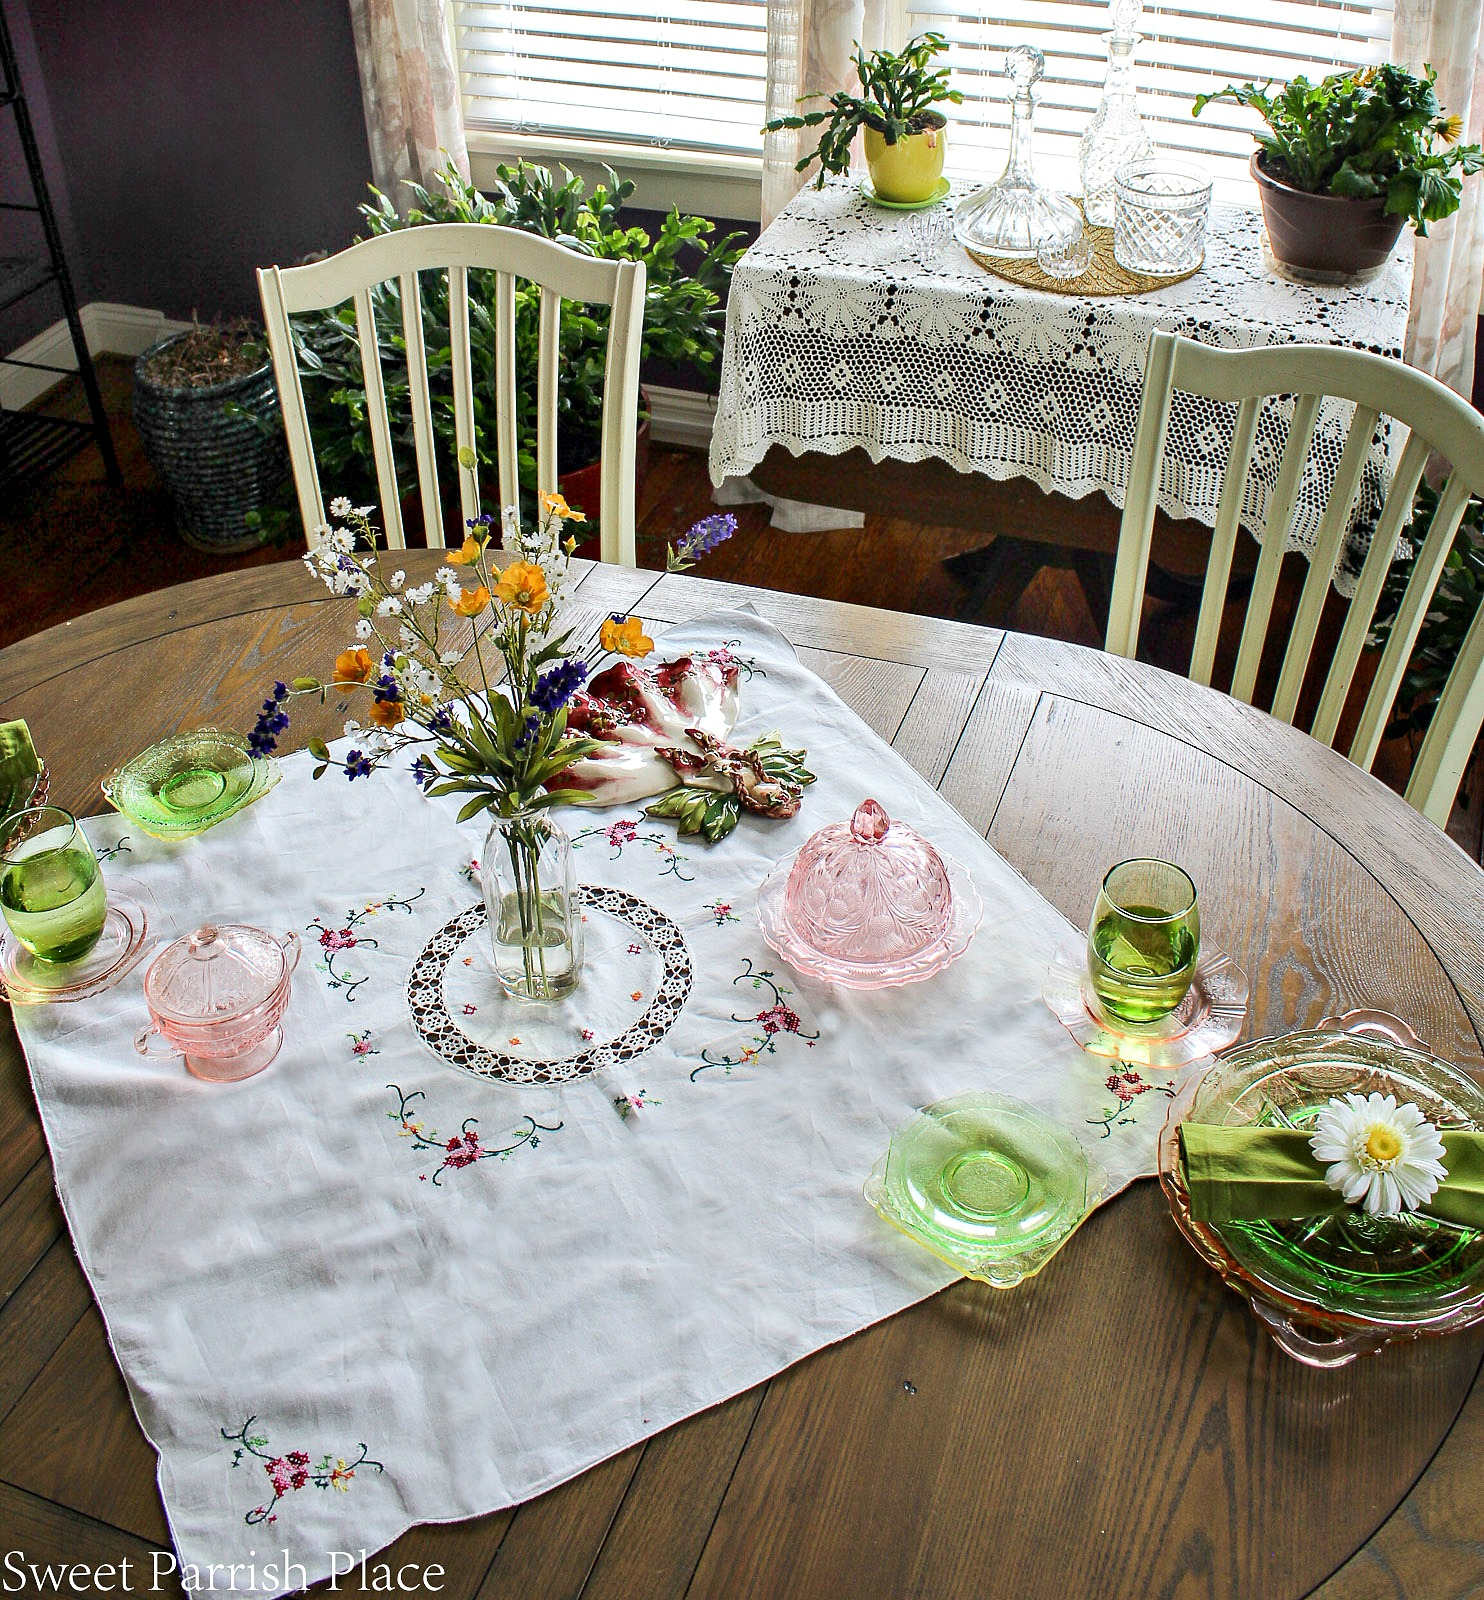 97 year old home tour-dining table